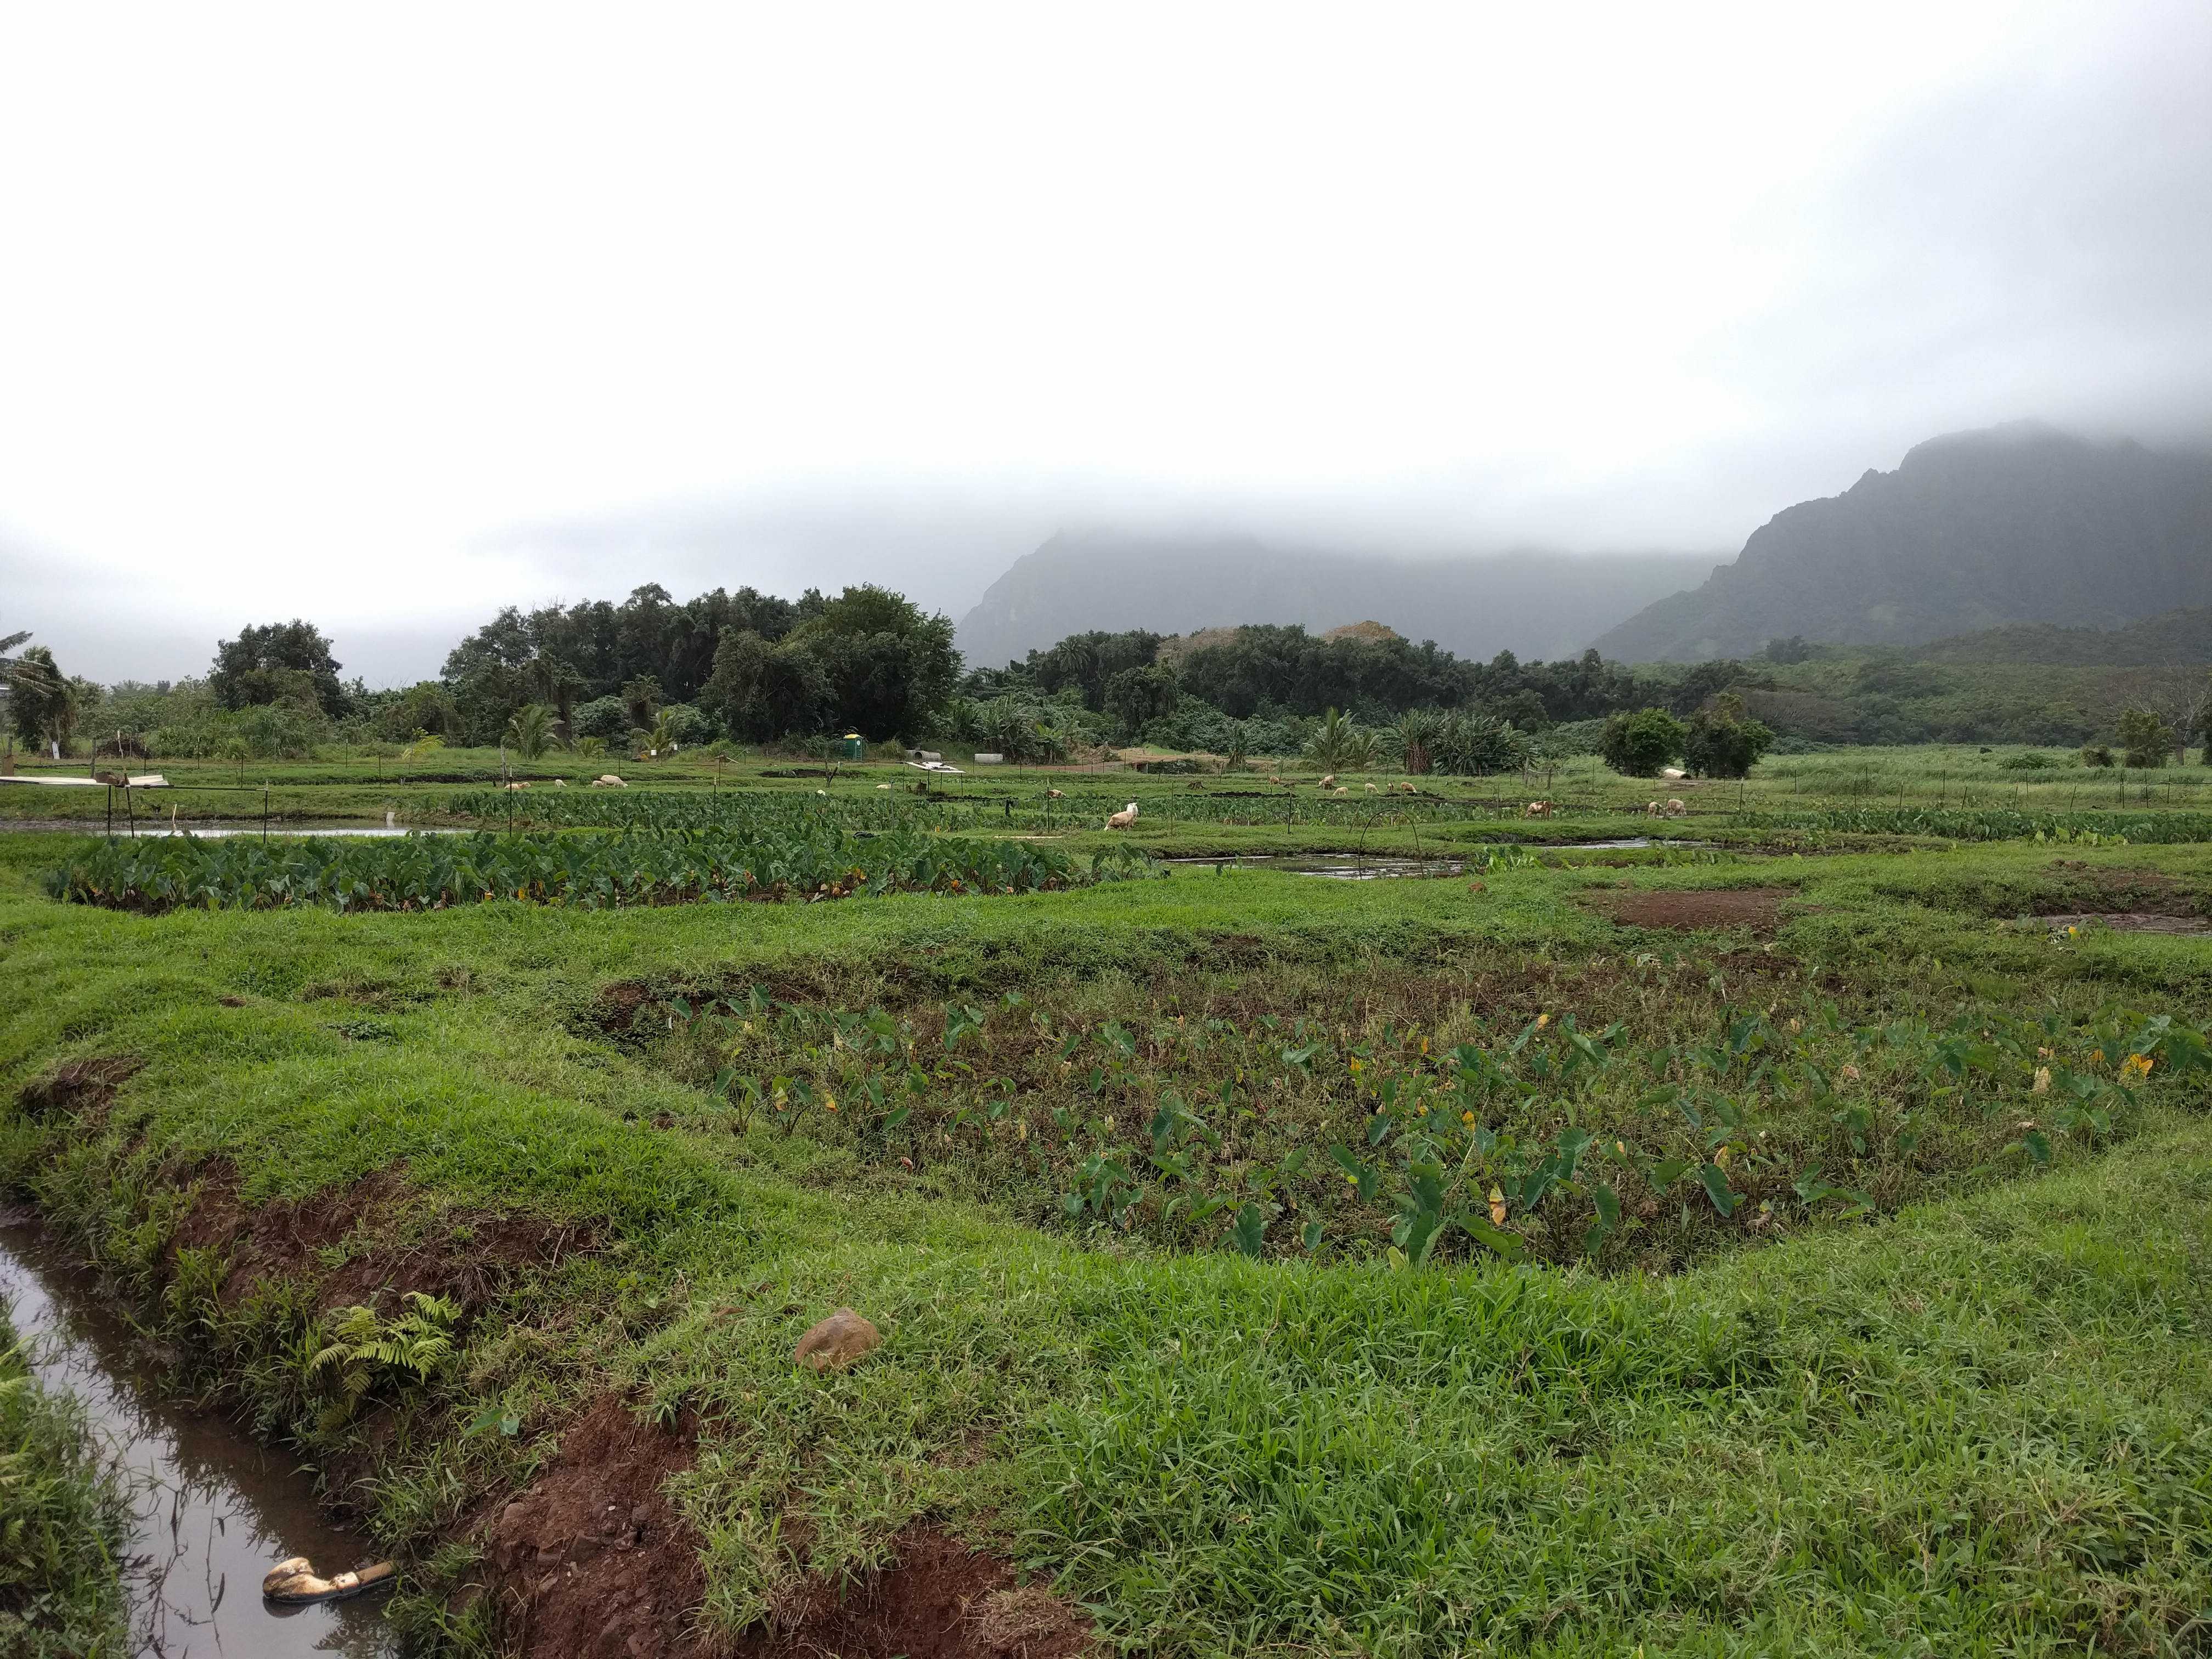 Over looking several loʻi patches that are dried out. The background have mountains covered in clouds.